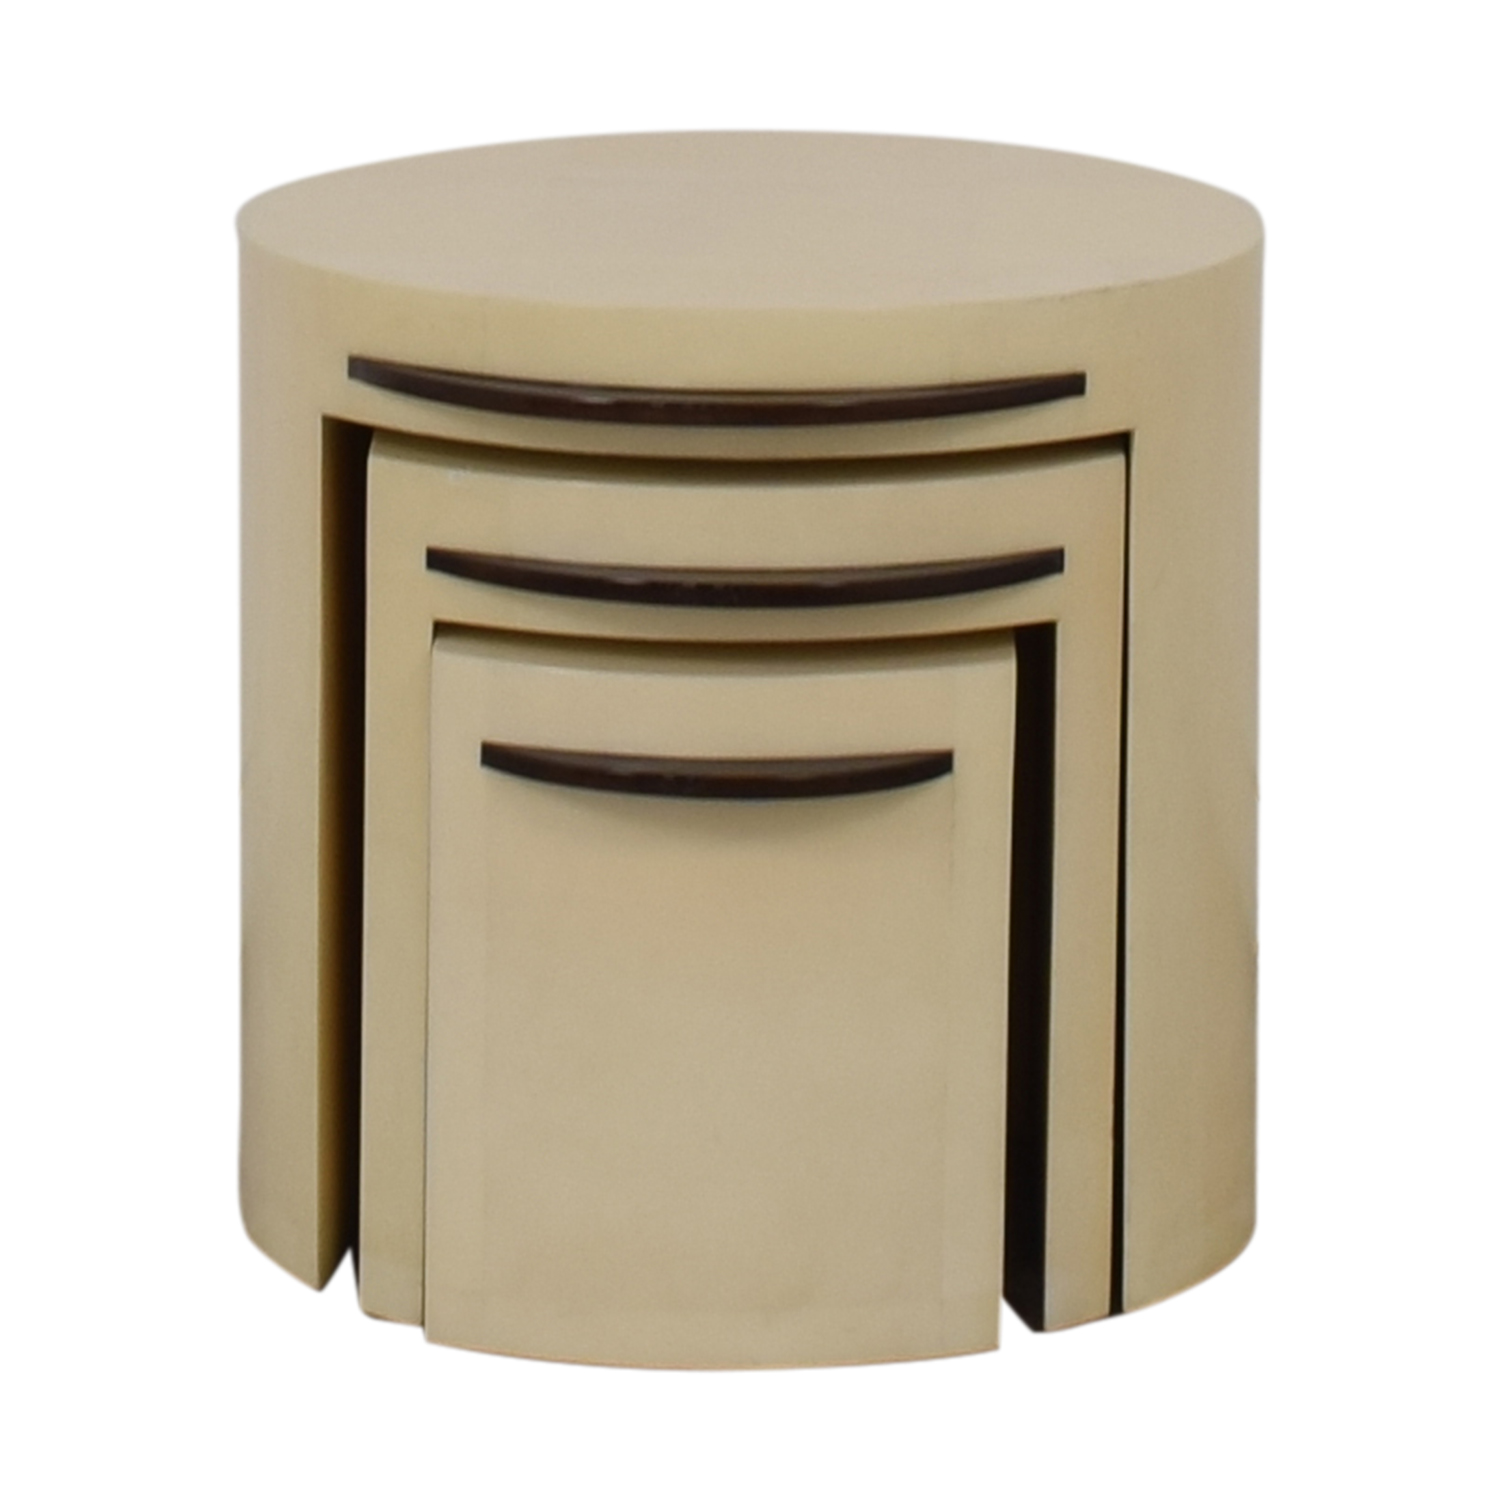 Lorin Marsh Lorin Marsh Lacquered Nesting Tables dimensions